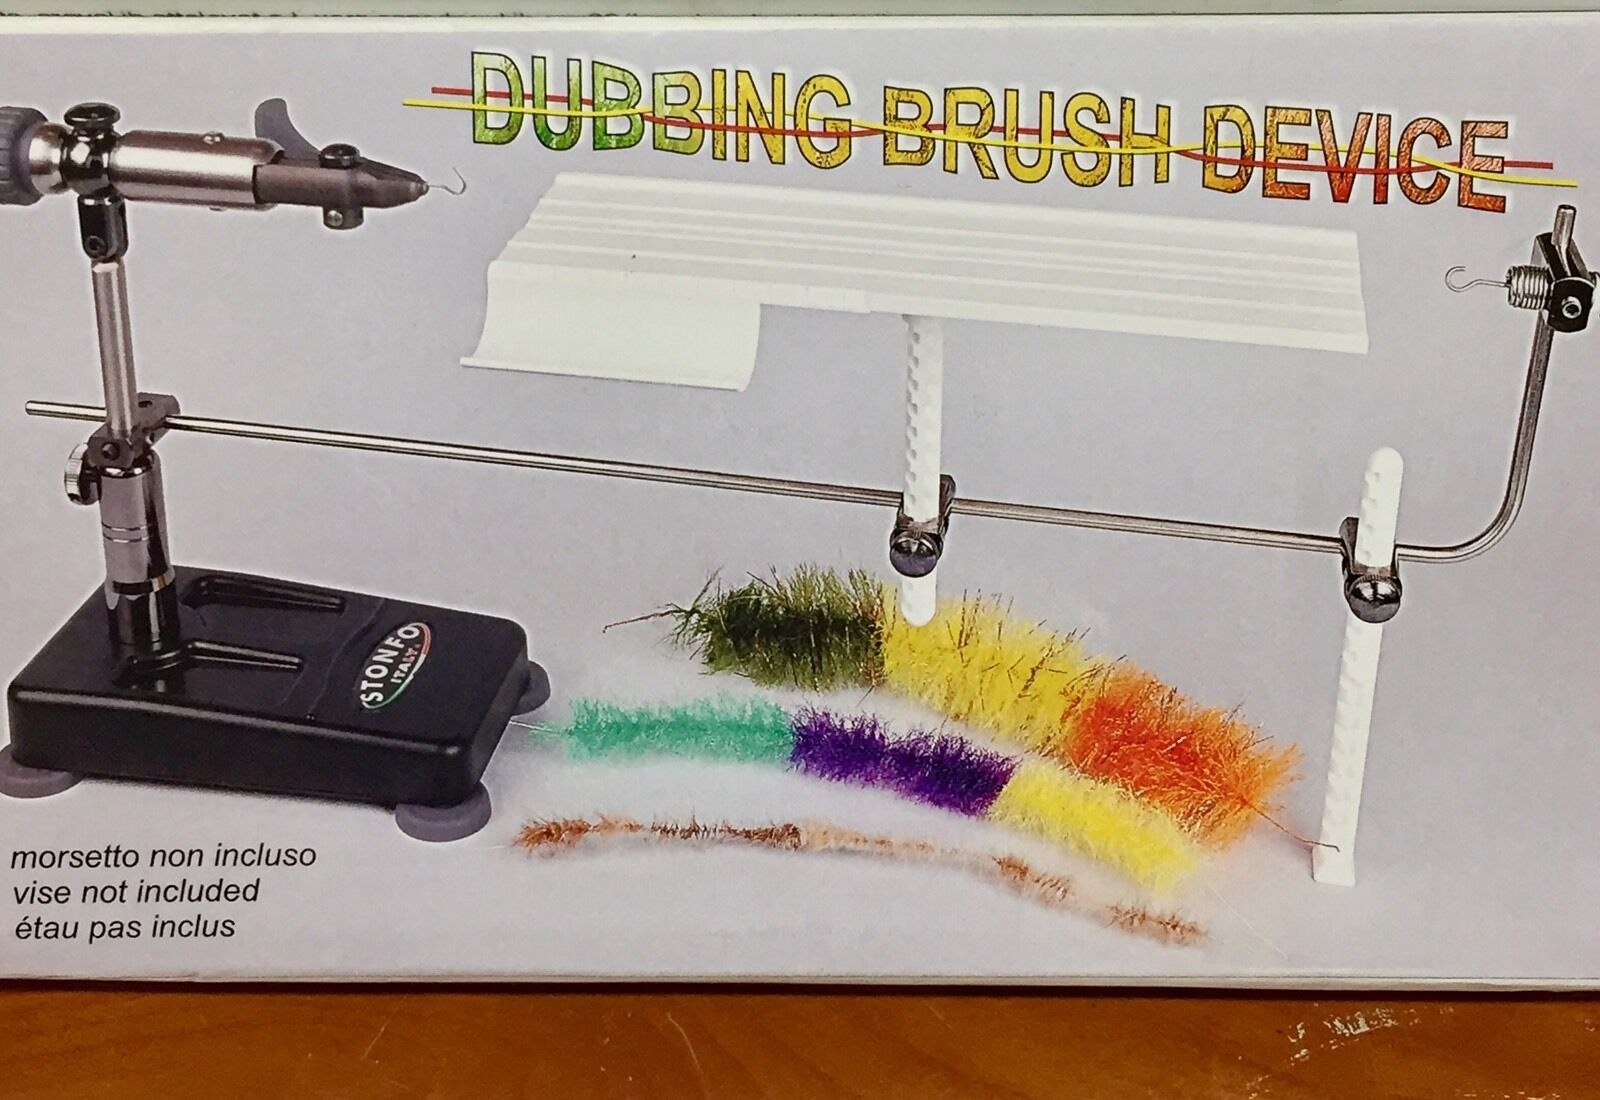 STONFO DUBBING  BRUSH DEVICE. CREATE YOUR OWN BRUSHES. NEW. TABLE.  great selection & quick delivery